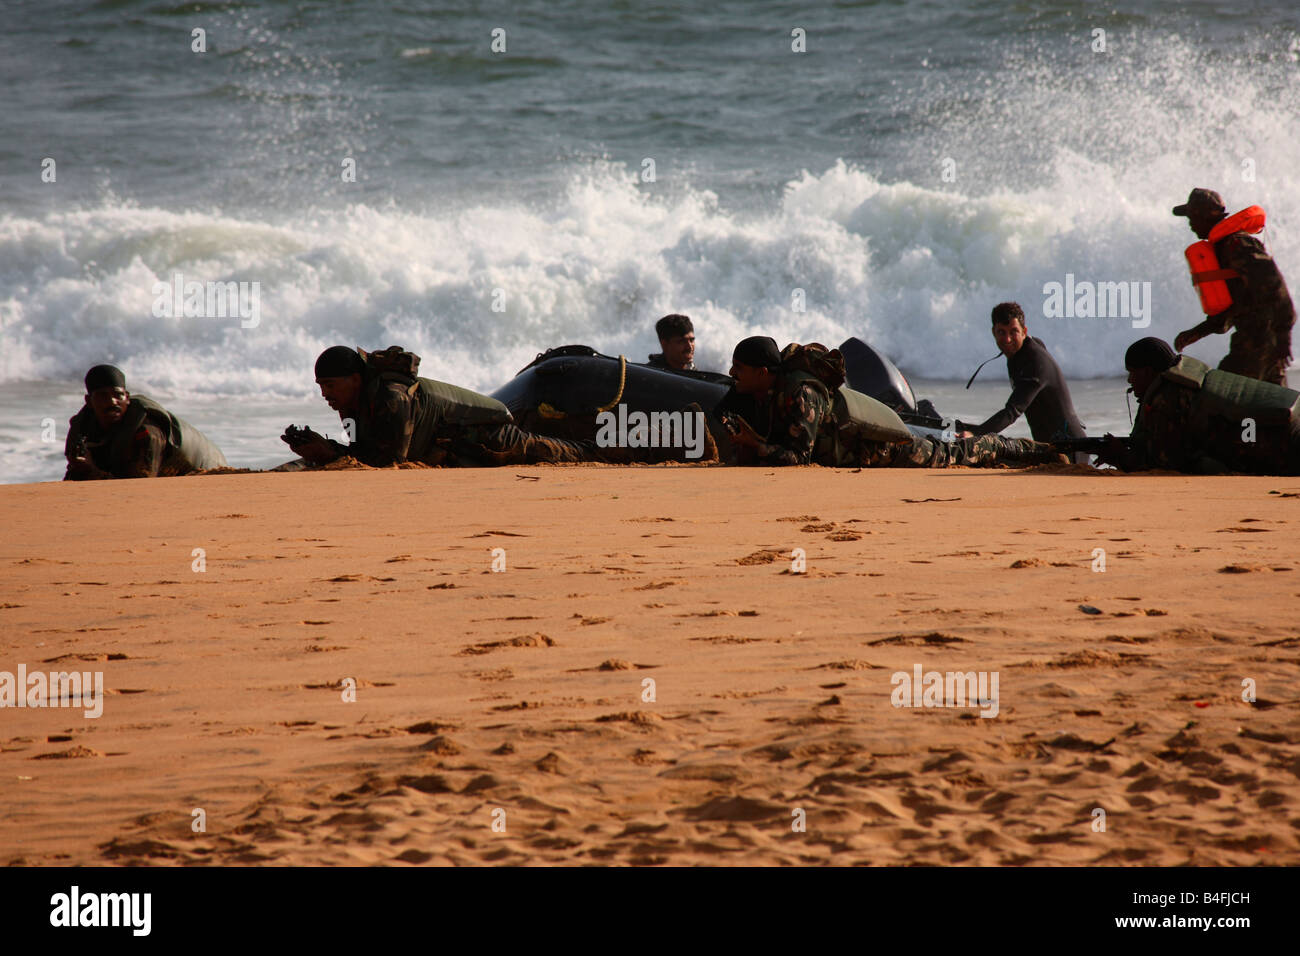 Amphibion excercise by Indian army in Trivandrum,Kerala,India - Stock Image